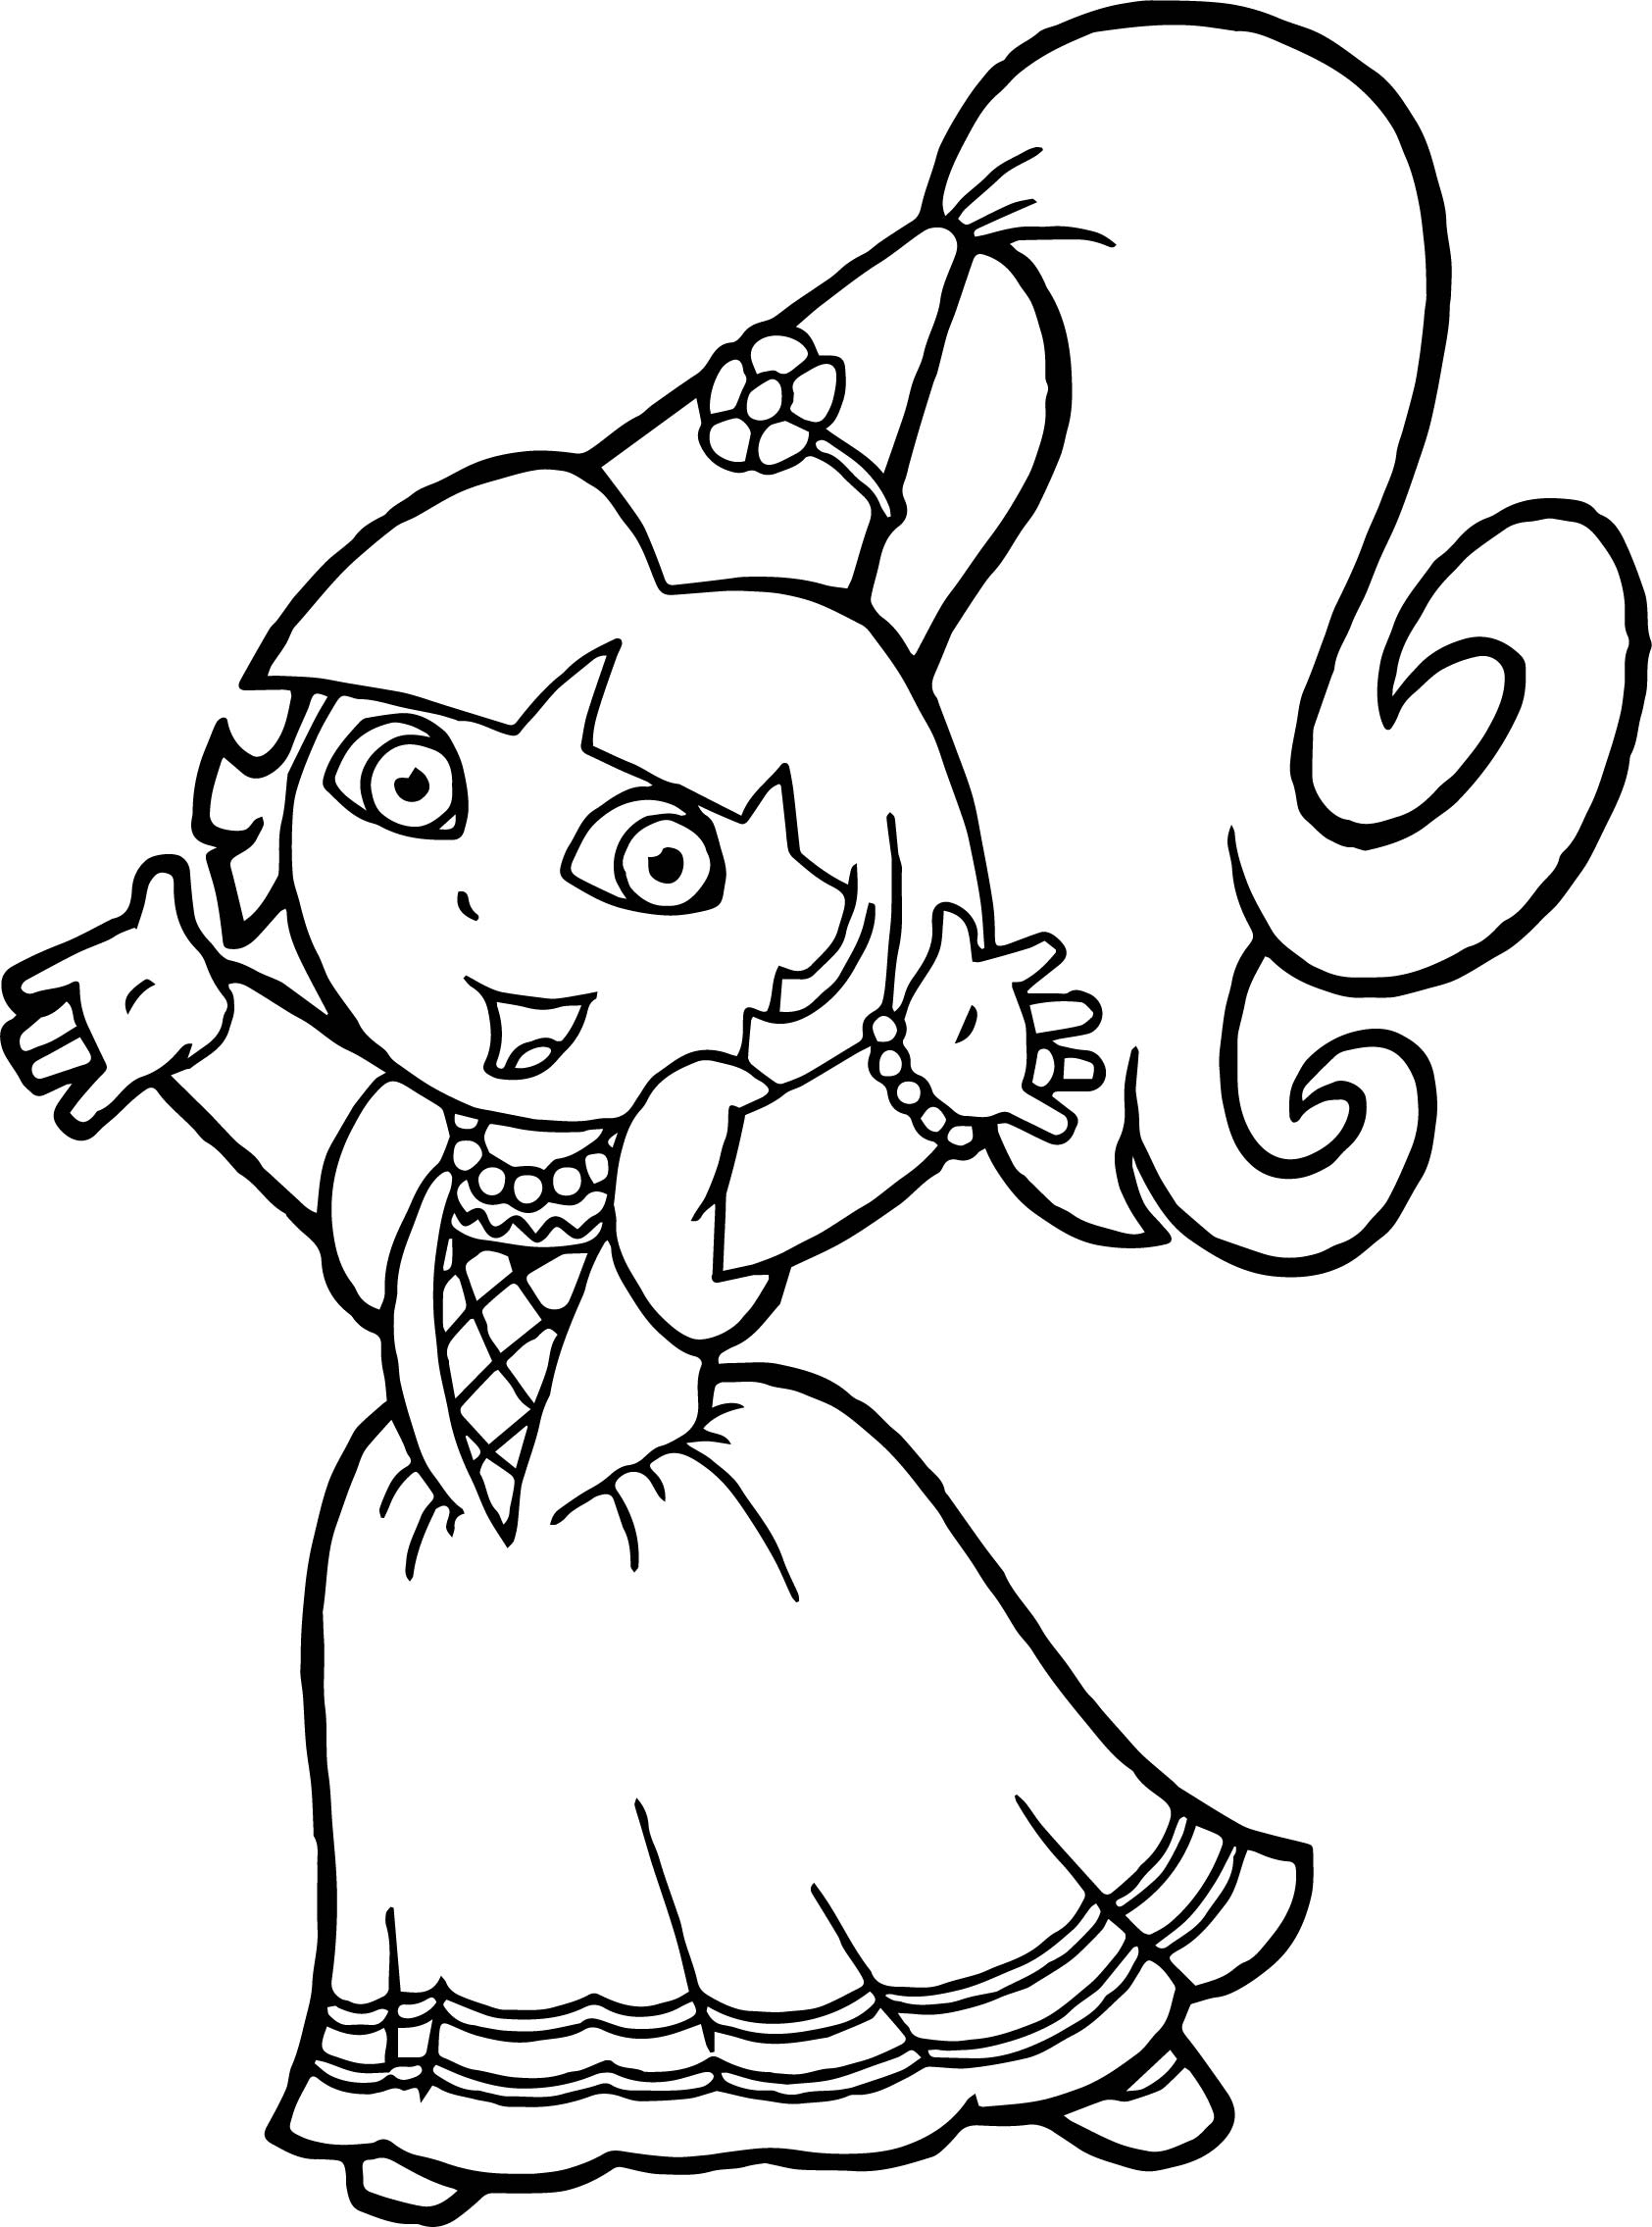 Dora mermaid pages coloring pages for Dora mermaid coloring pages